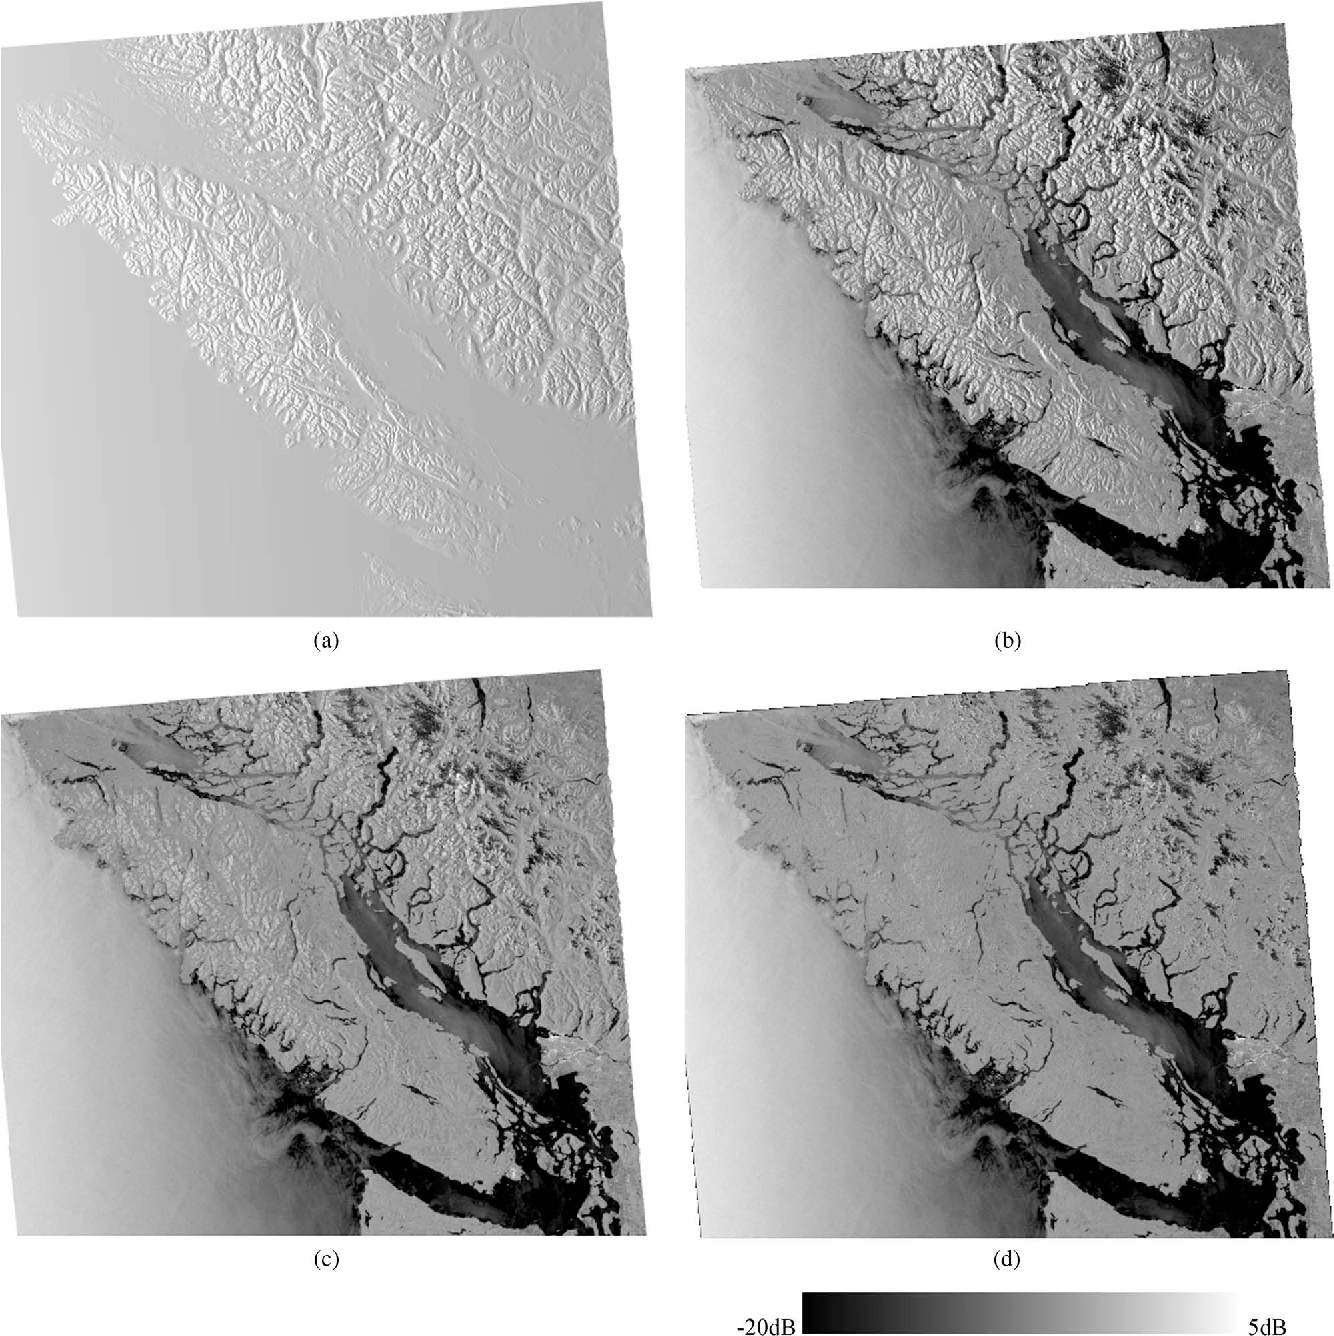 Fig. 9. ENVISAT ASAR Wide Swath VV Image acquired on 2008.09.10 of Vancouver Island and southwestern British Columbia, Canada—SRTM3 DHM used for terrain-geocoding and radiometric corrections. (a) Local contributing area Aγ (image simulation), (b) γ0E GTC, (c) σ 0 NORLIM NORLIM, (d) γ 0 T RTC.